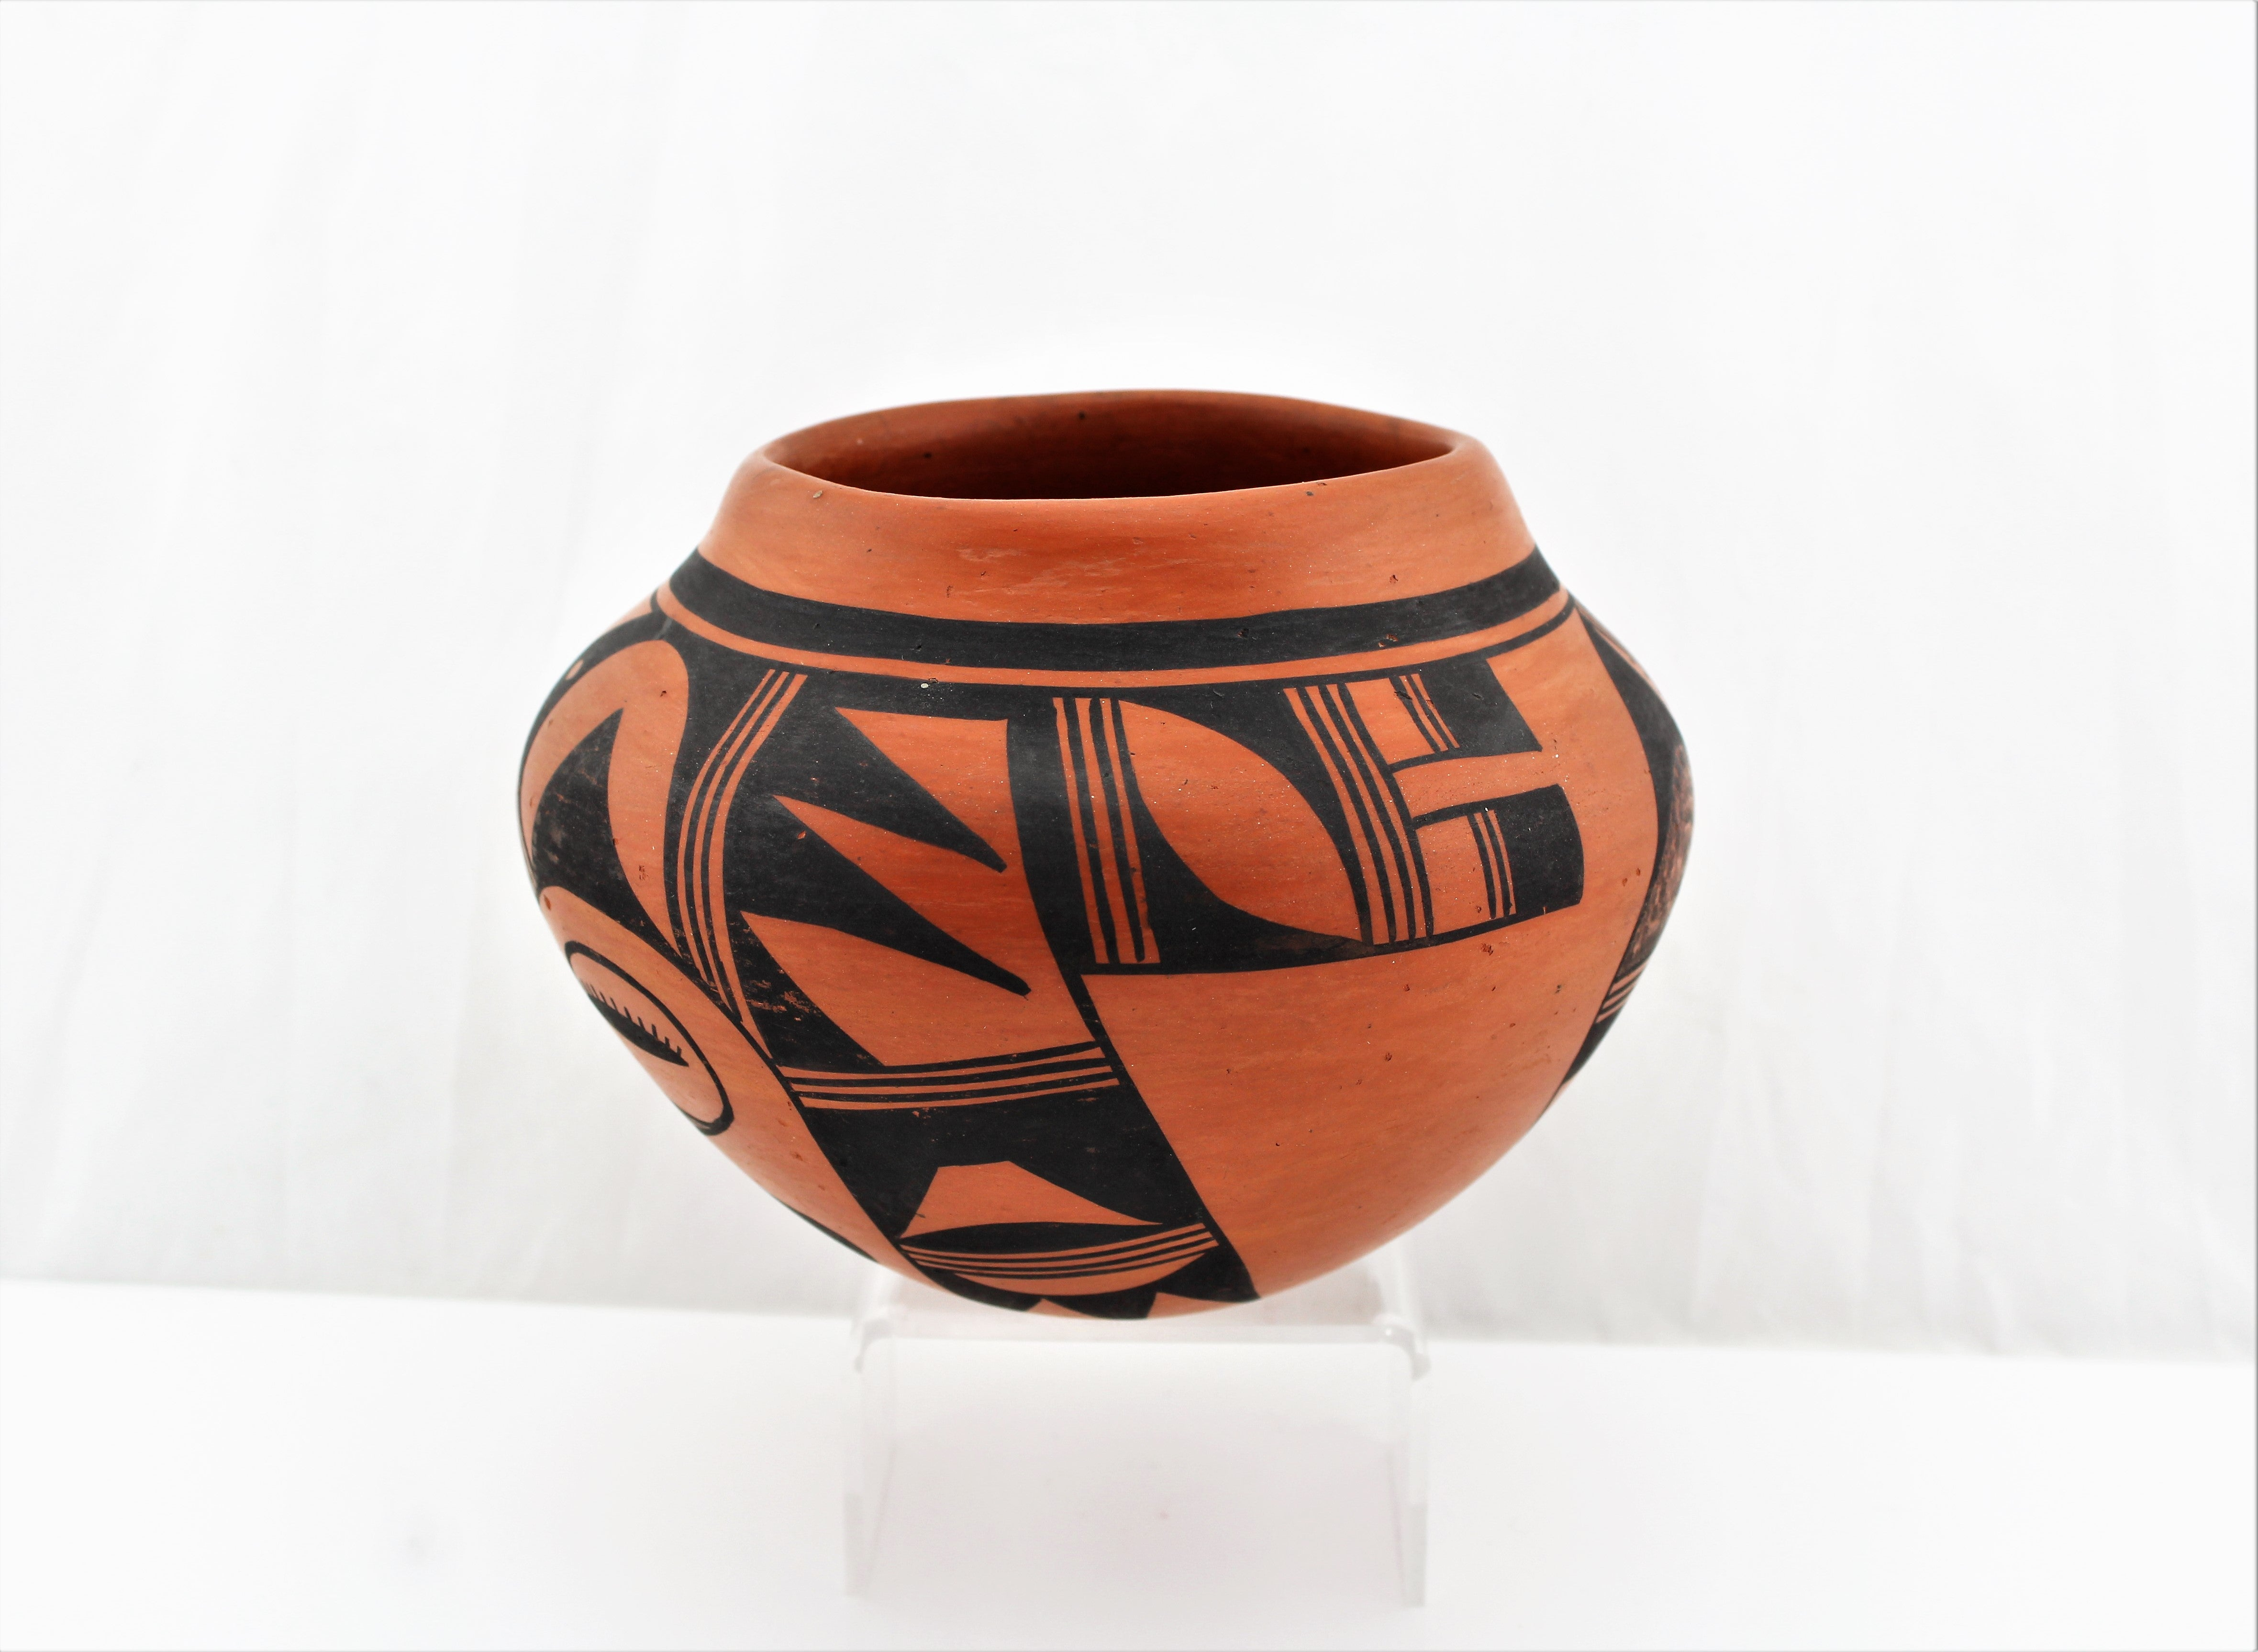 Evelyn Poolheco Hopi Tewa Pottery Bowl